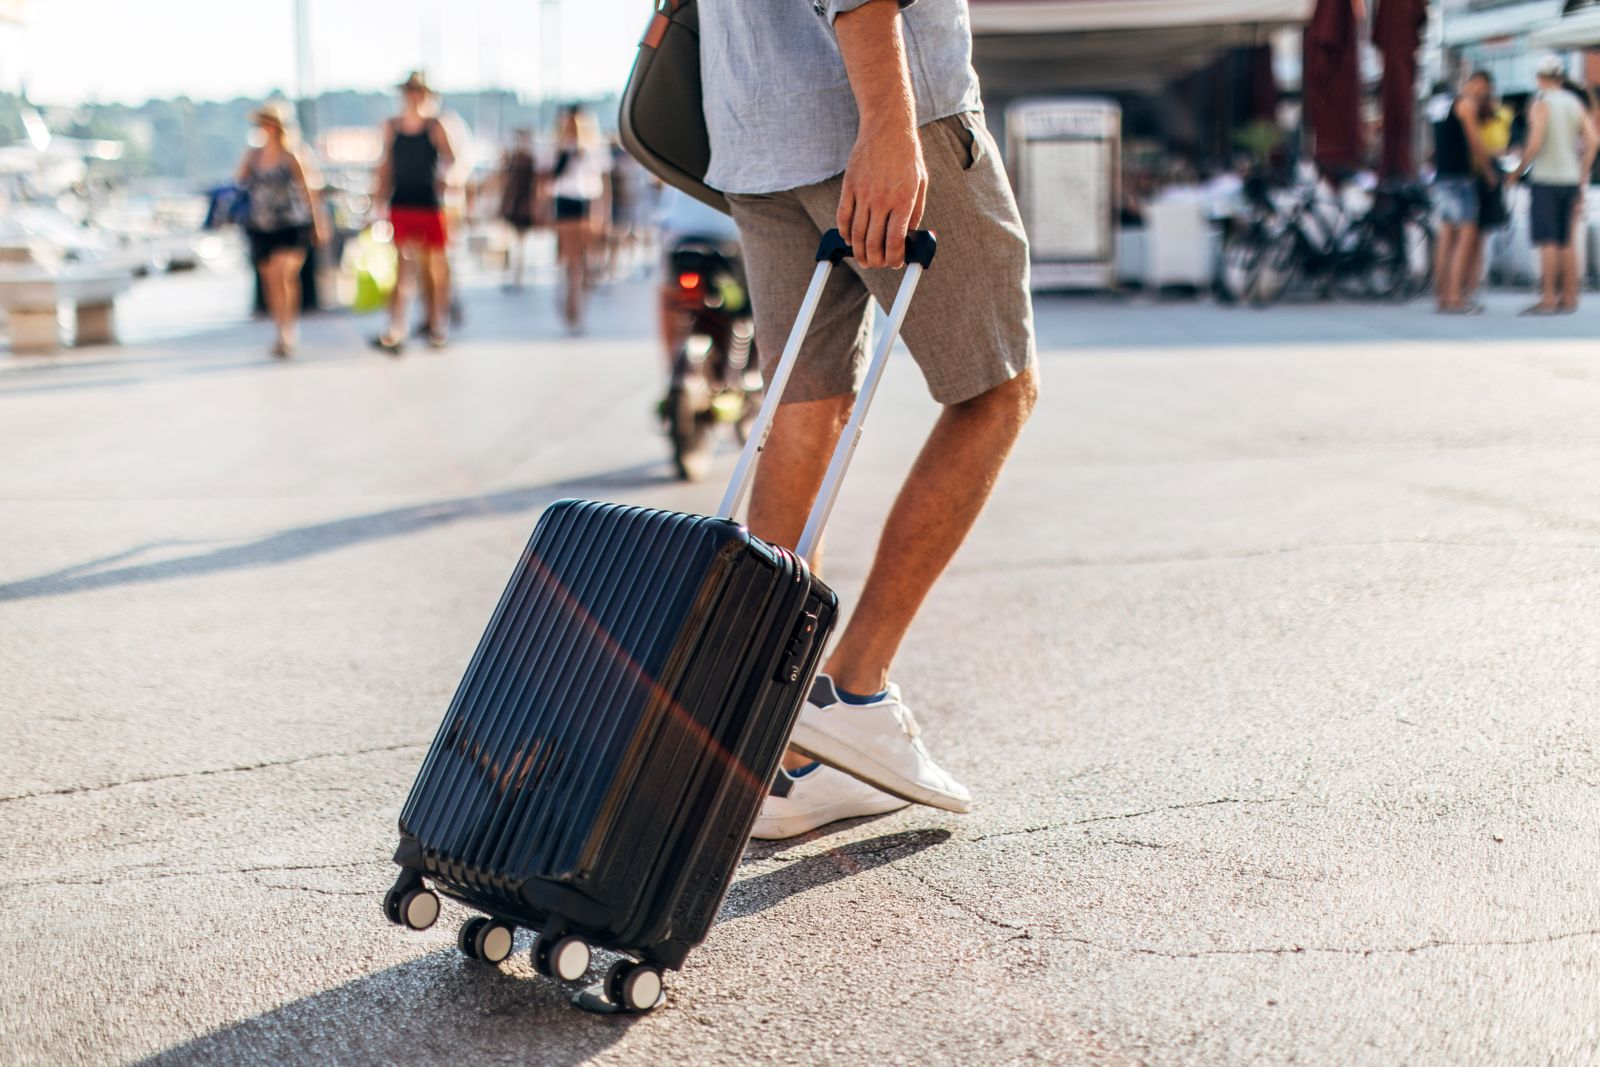 Tourist with suitcase